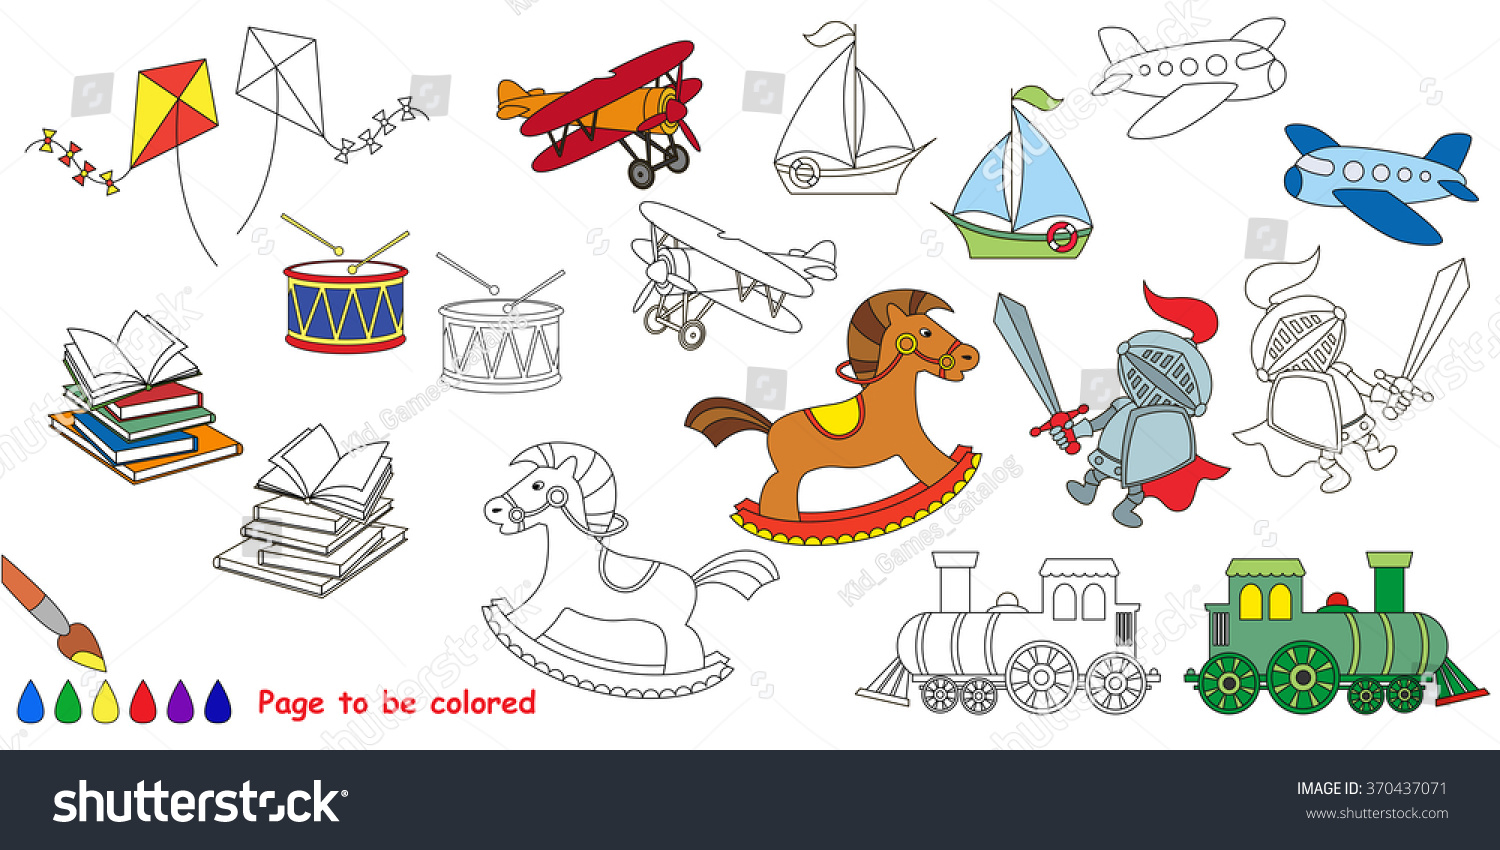 Boy Toy Big Coloring Book Colorless Stock Vector (Royalty Free ...